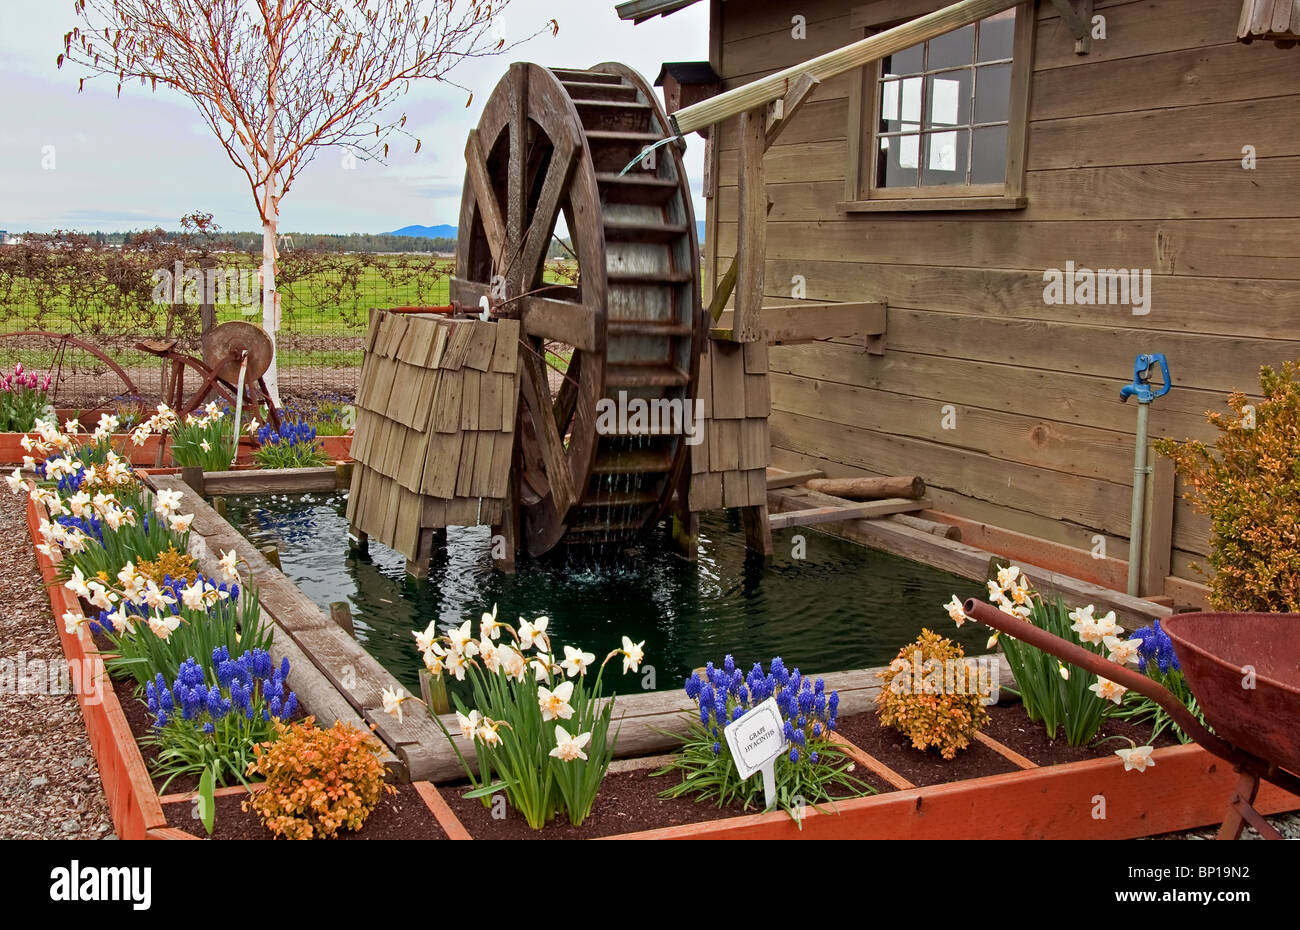 Stock Photo   This Stock Image Is A Water Wheel Is In A Beautiful Spring  Garden With Many Flower Bulbs Blooming, Daffodils, Grape Hyacinths